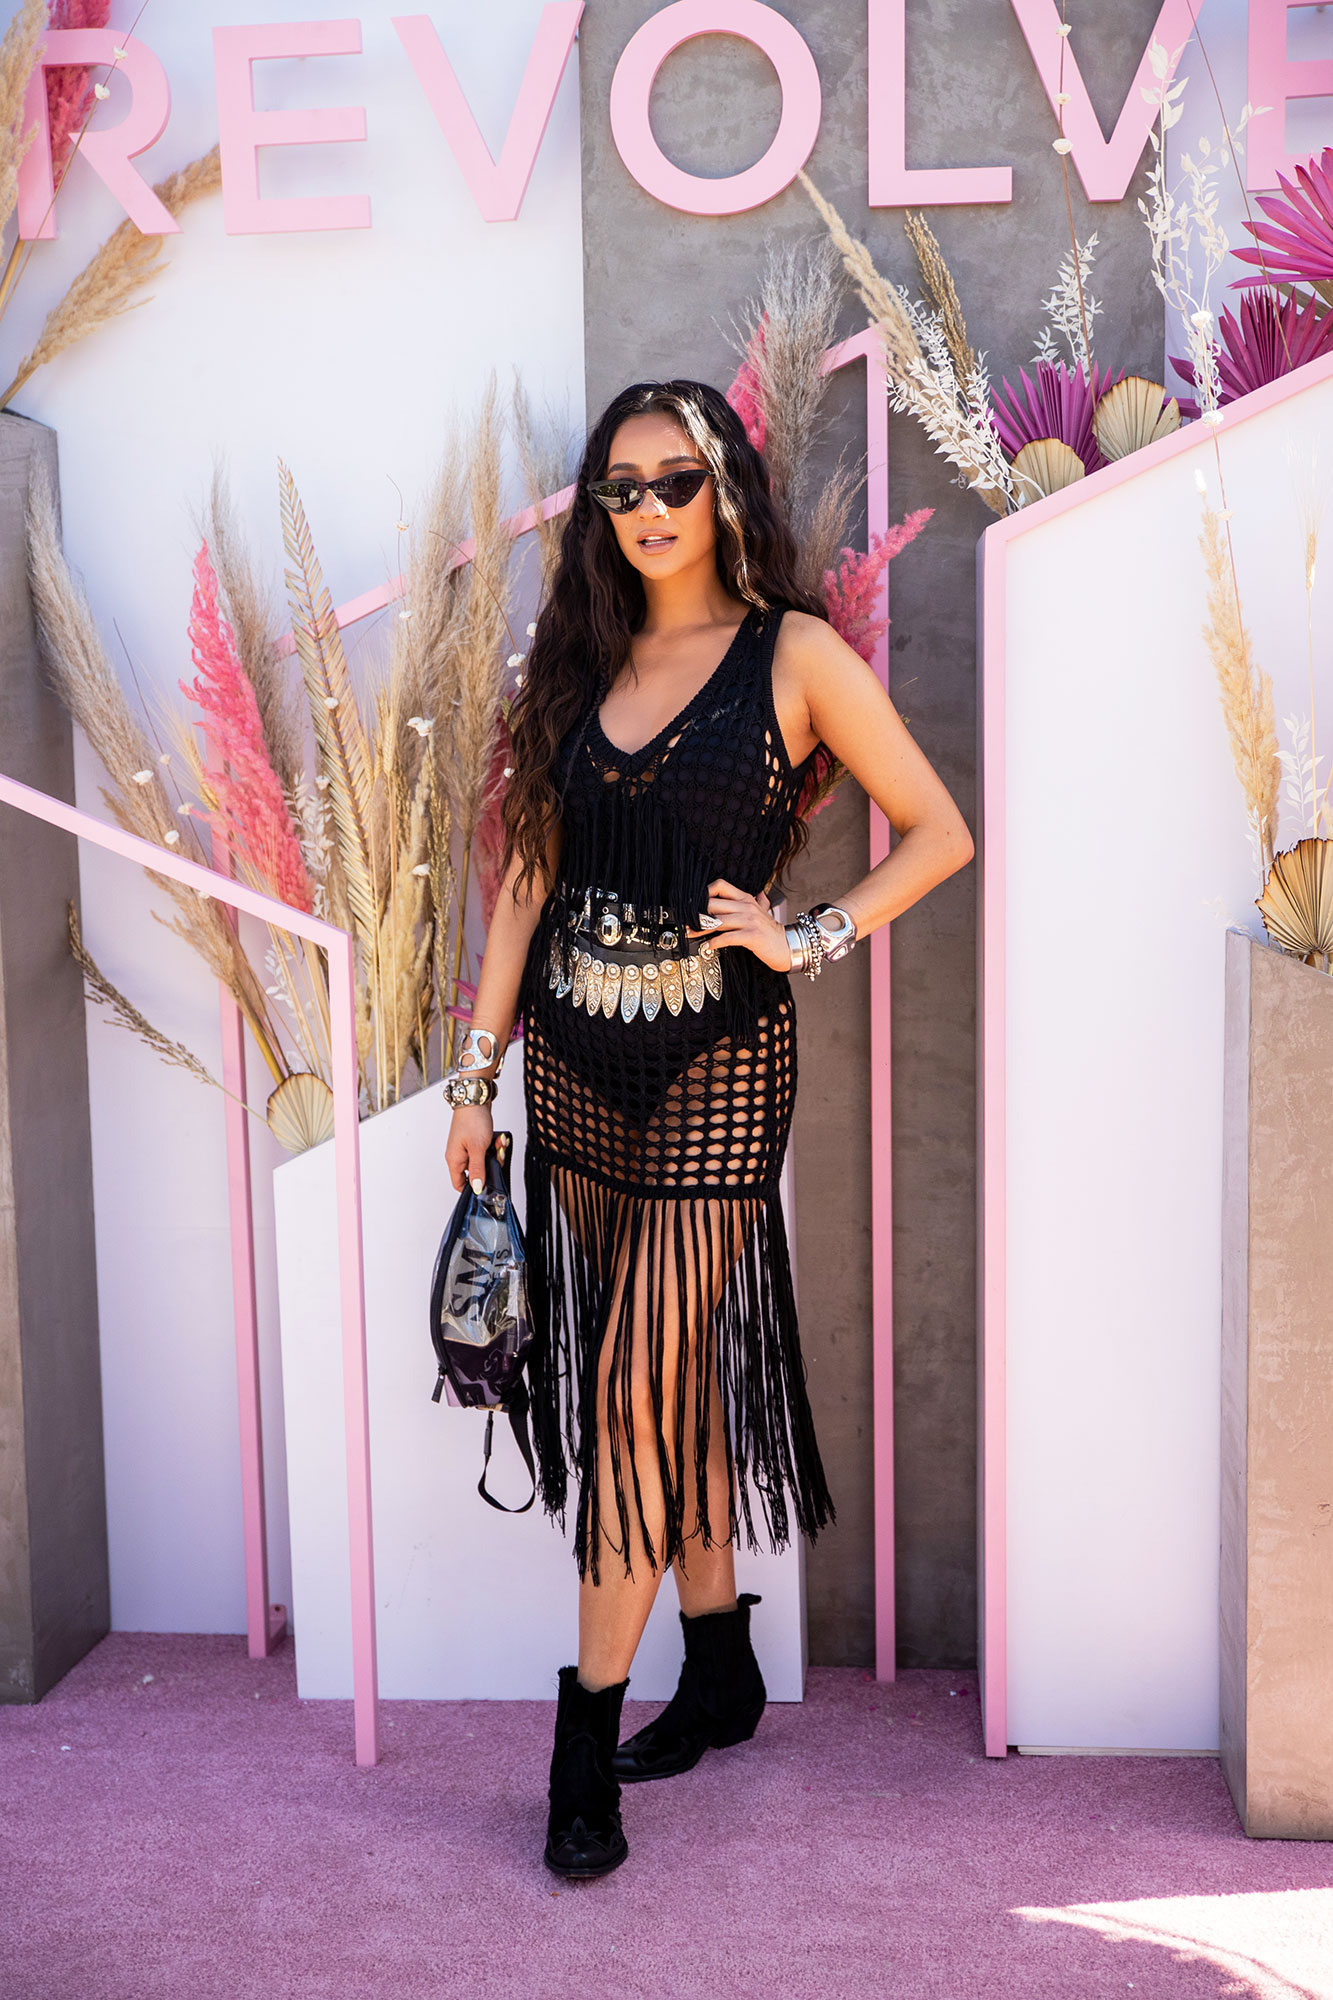 Shay Mitchell coachella fashion - Crochet and fringe made the perfect pair on the You star's sheer dress at the Revolve Festival on Saturday, April 13. She accessorized with the new belt bag from her BEIS collection and Golden Goose booties.